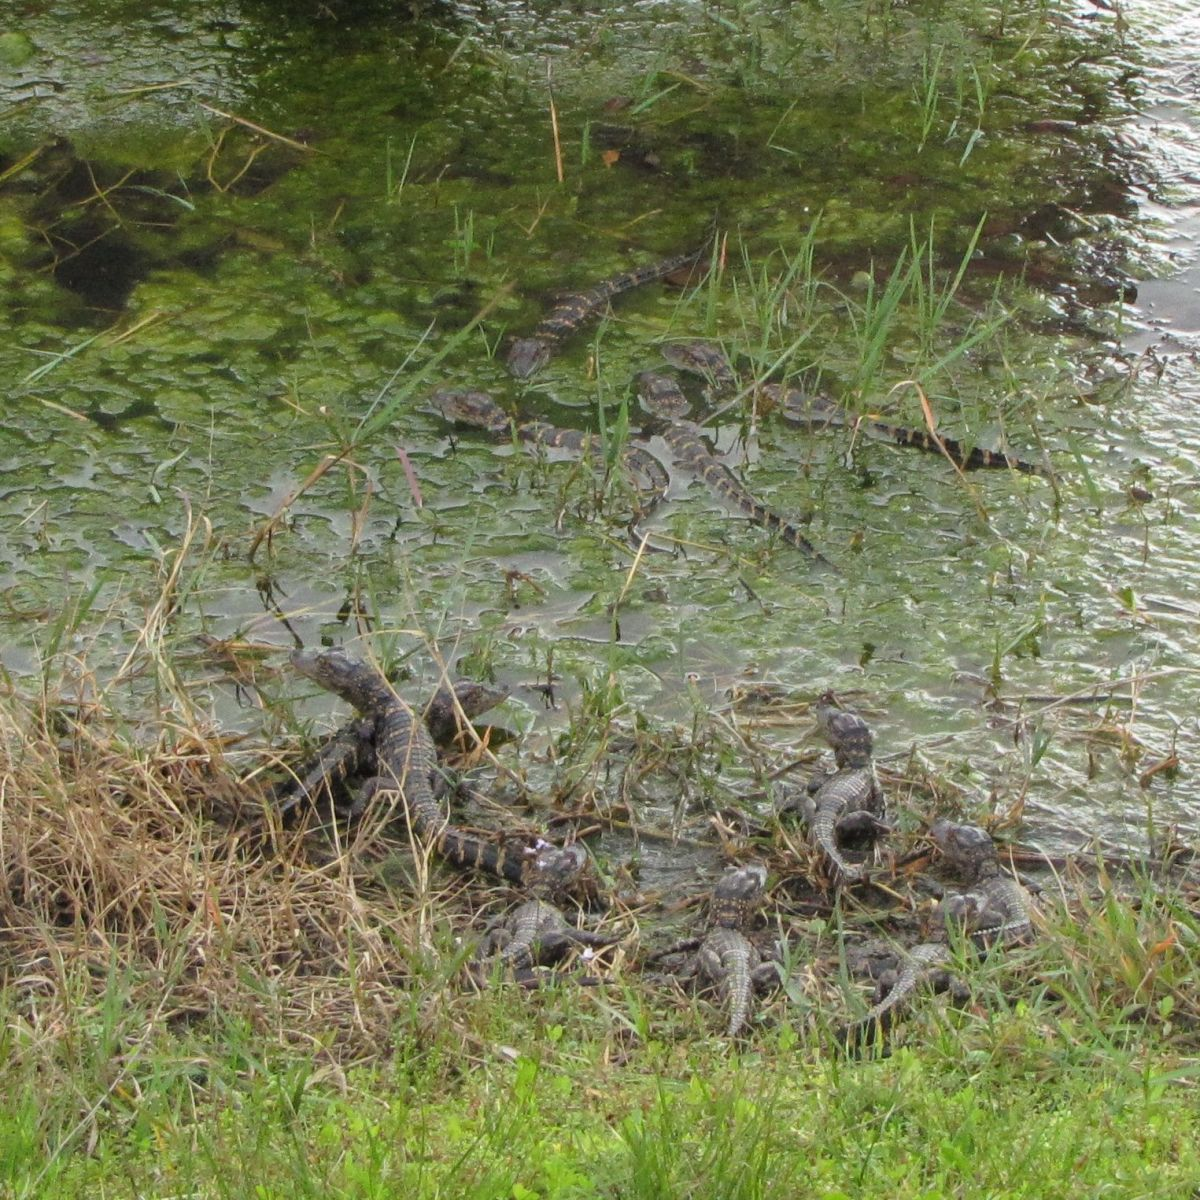 Look closely to see all the baby alligators in the mud and moss.